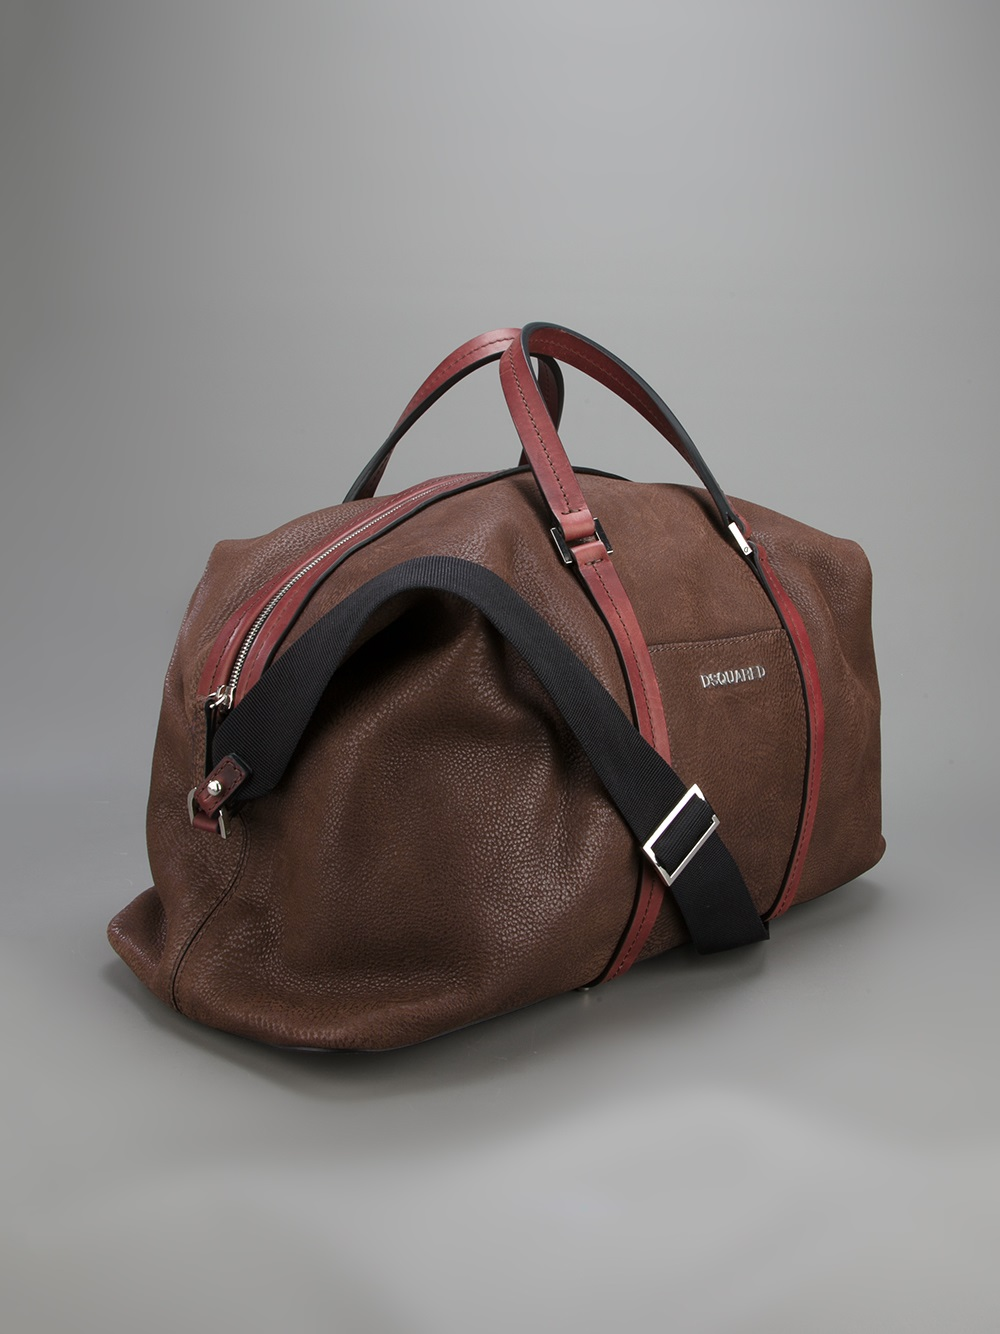 0c929be6e75f Lyst - DSquared² Leather Duffel Bag in Brown for Men